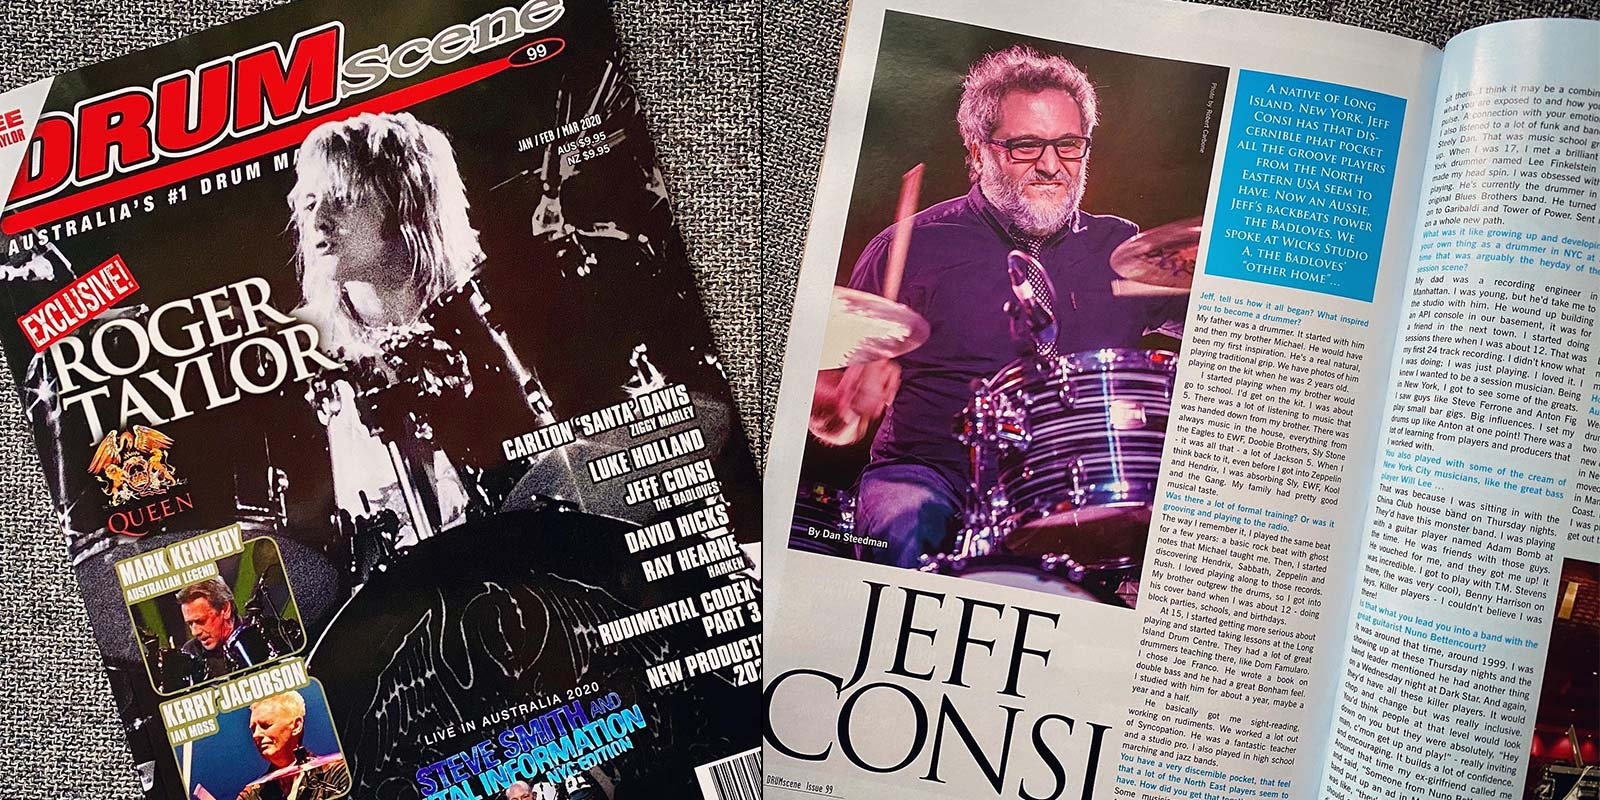 Drumscene Magazine Issue 99: Jeff Consi